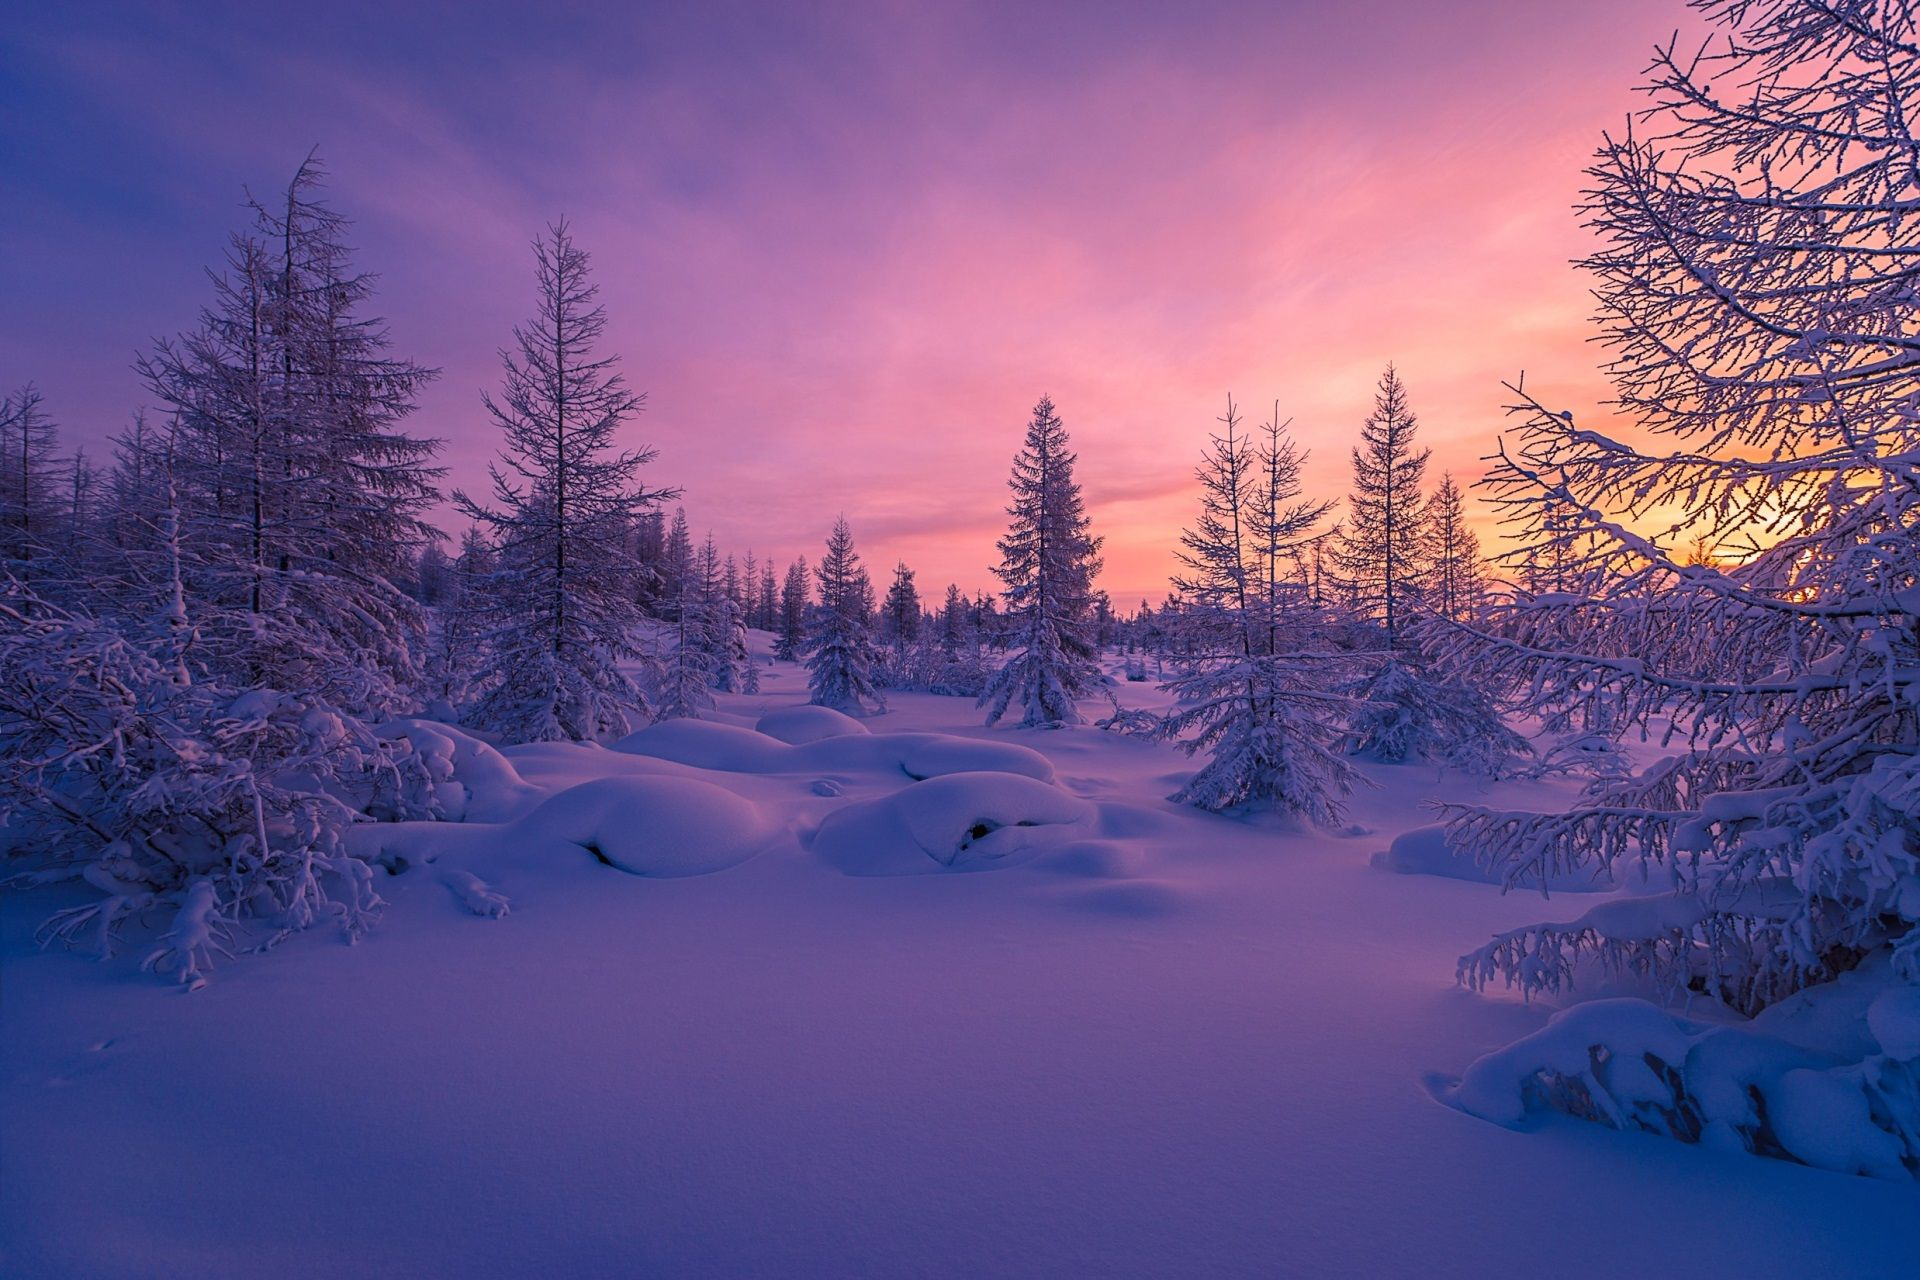 1920x1280 Winter Forest Download Wallpapers For Pc Winter Landscape Winter Forest Landscape Wallpaper